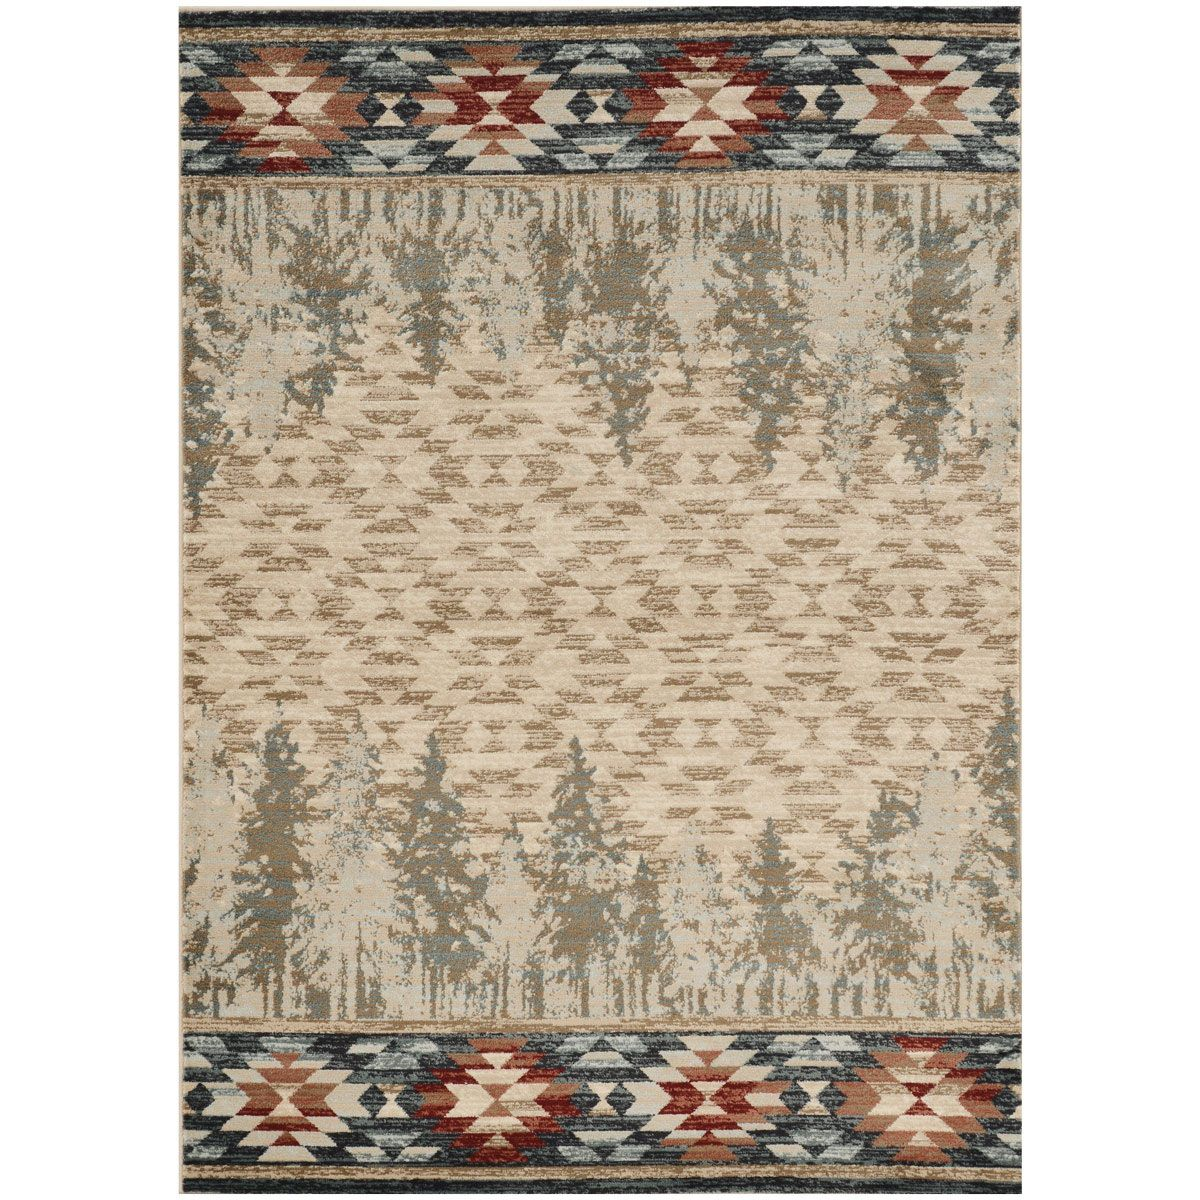 Wasatch Pines Rug - 8 x 10